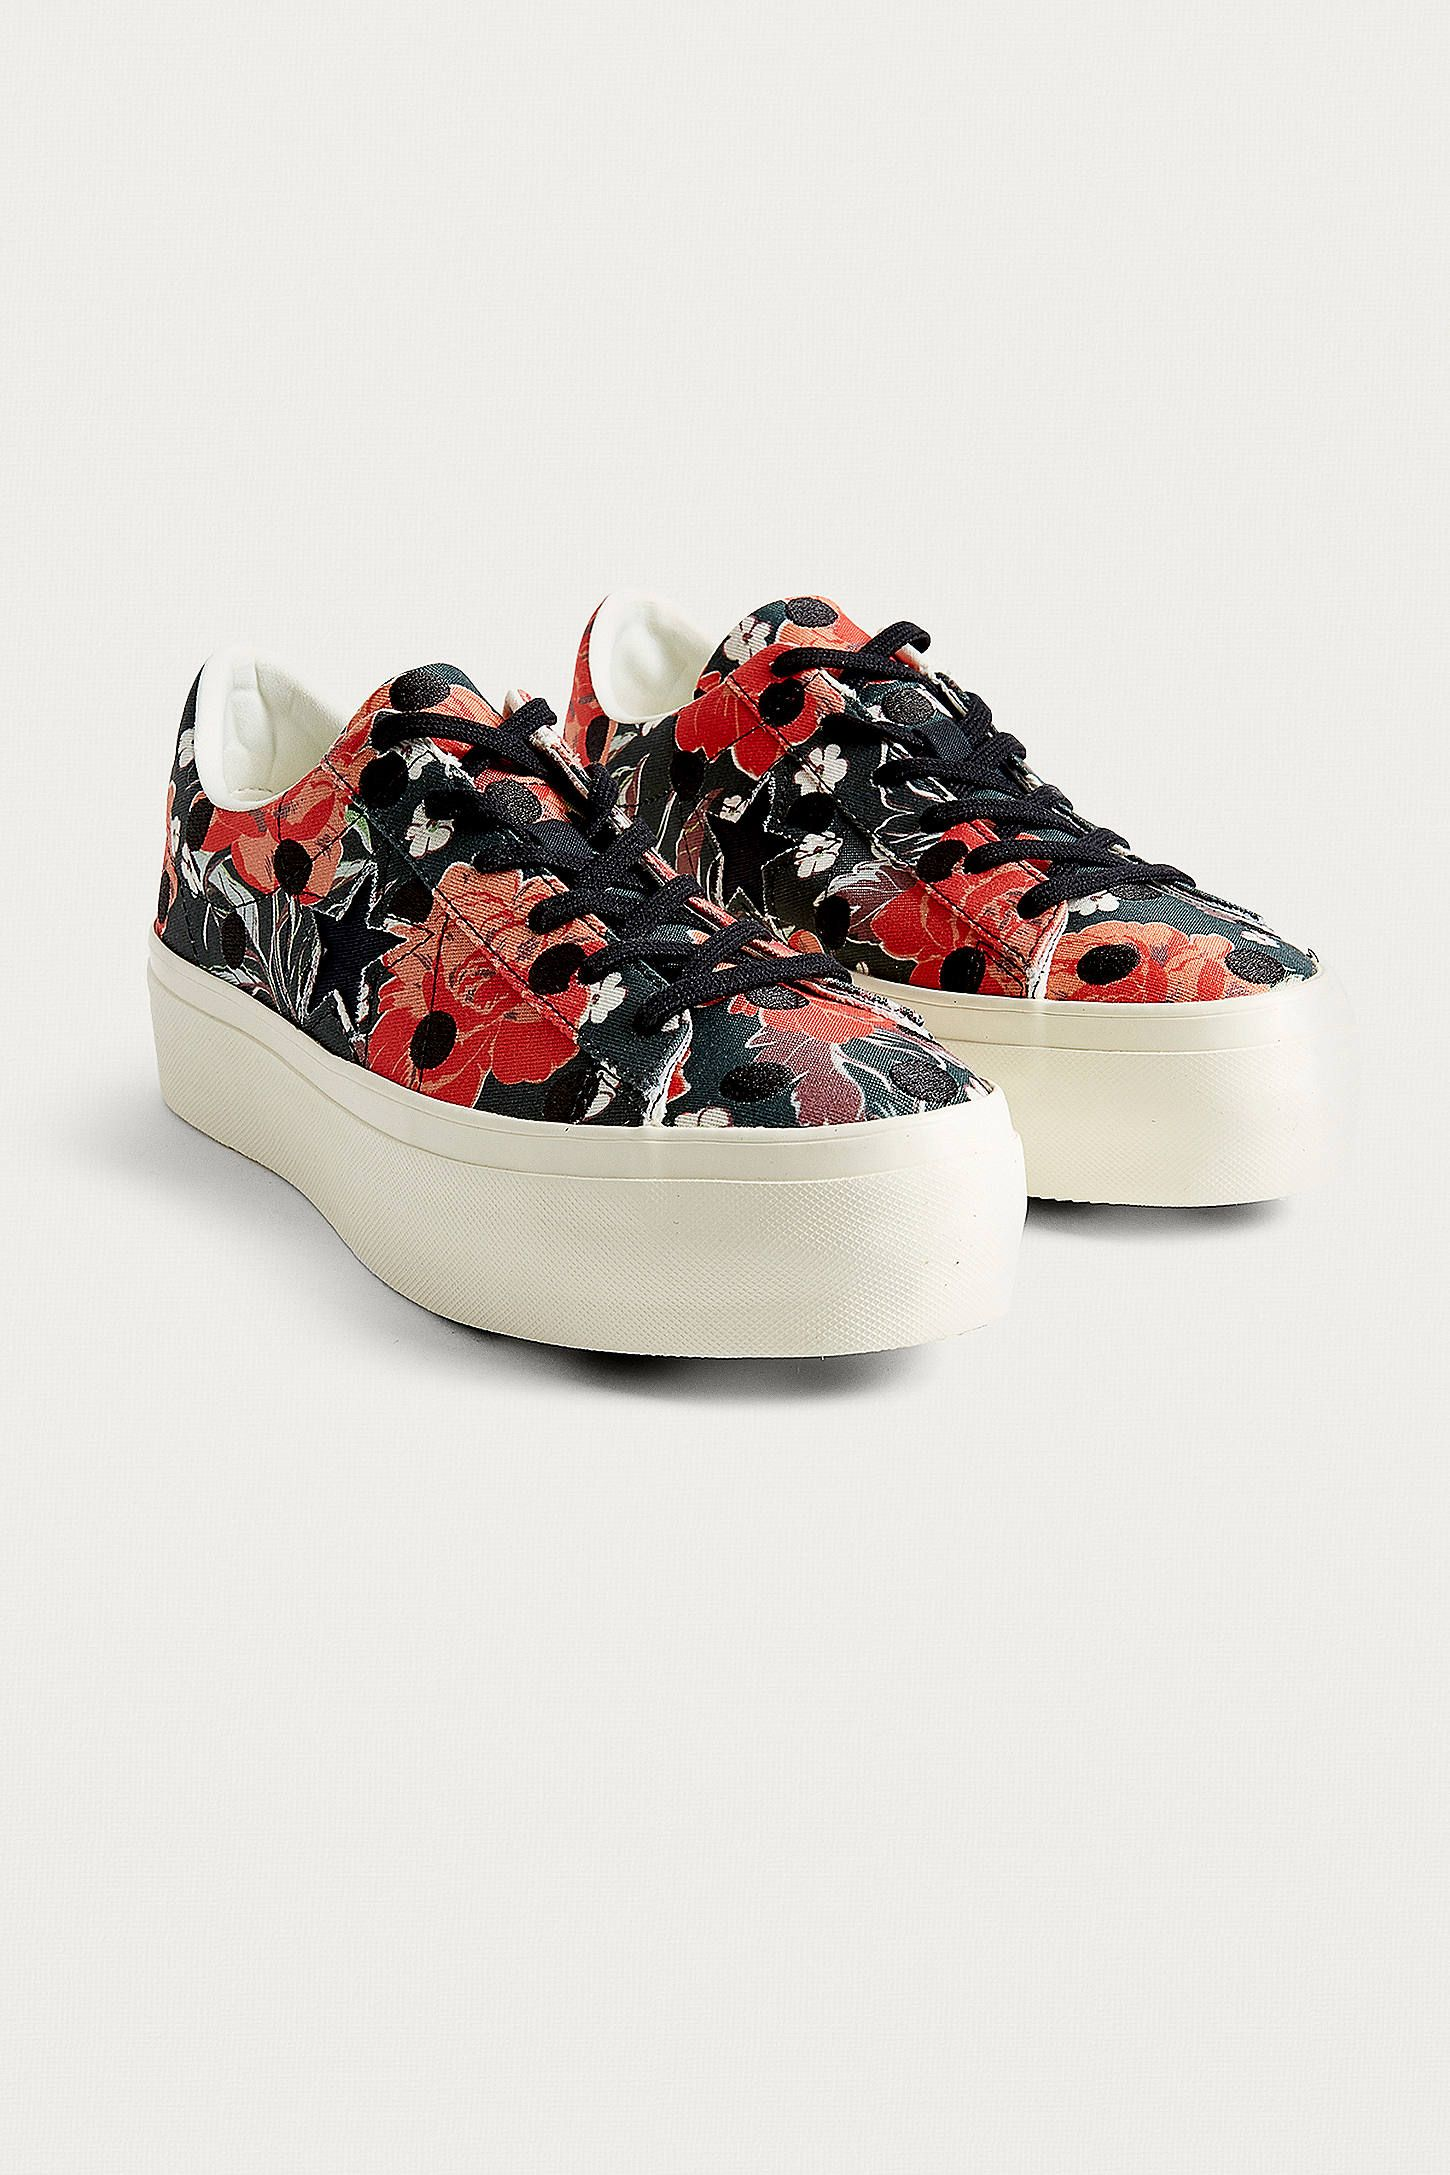 converse one star floral